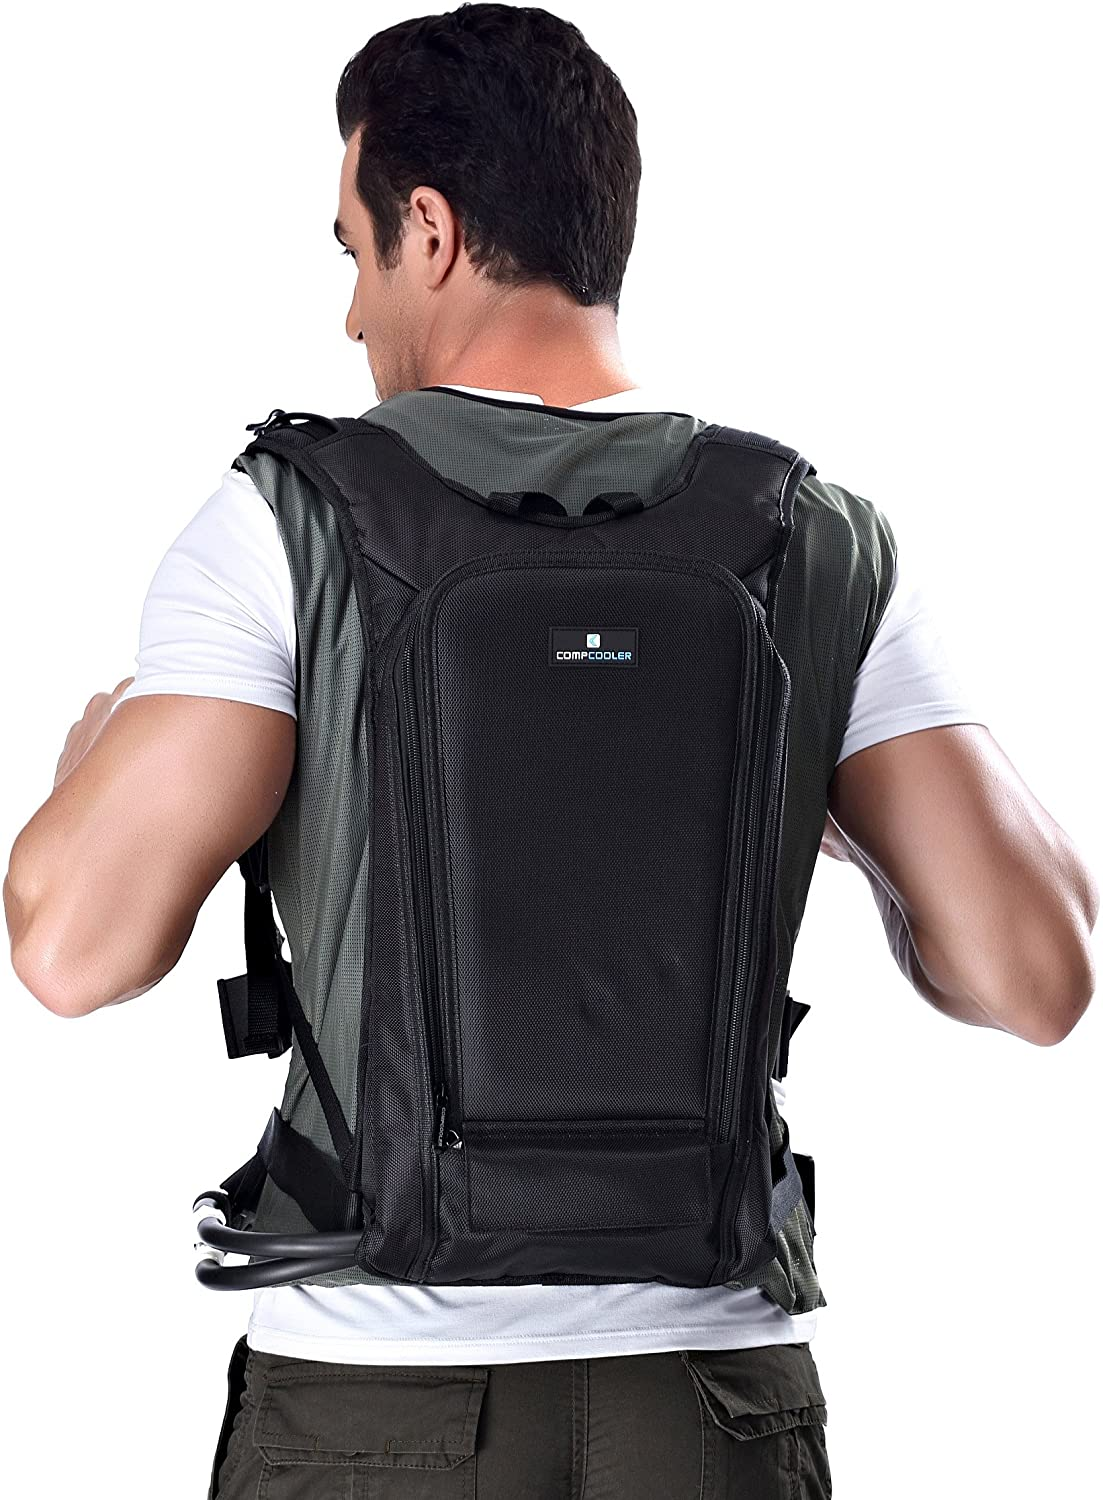 Personal Microclimate Body Cooling Vest with backpack detachable Bladder for easy to reload ice